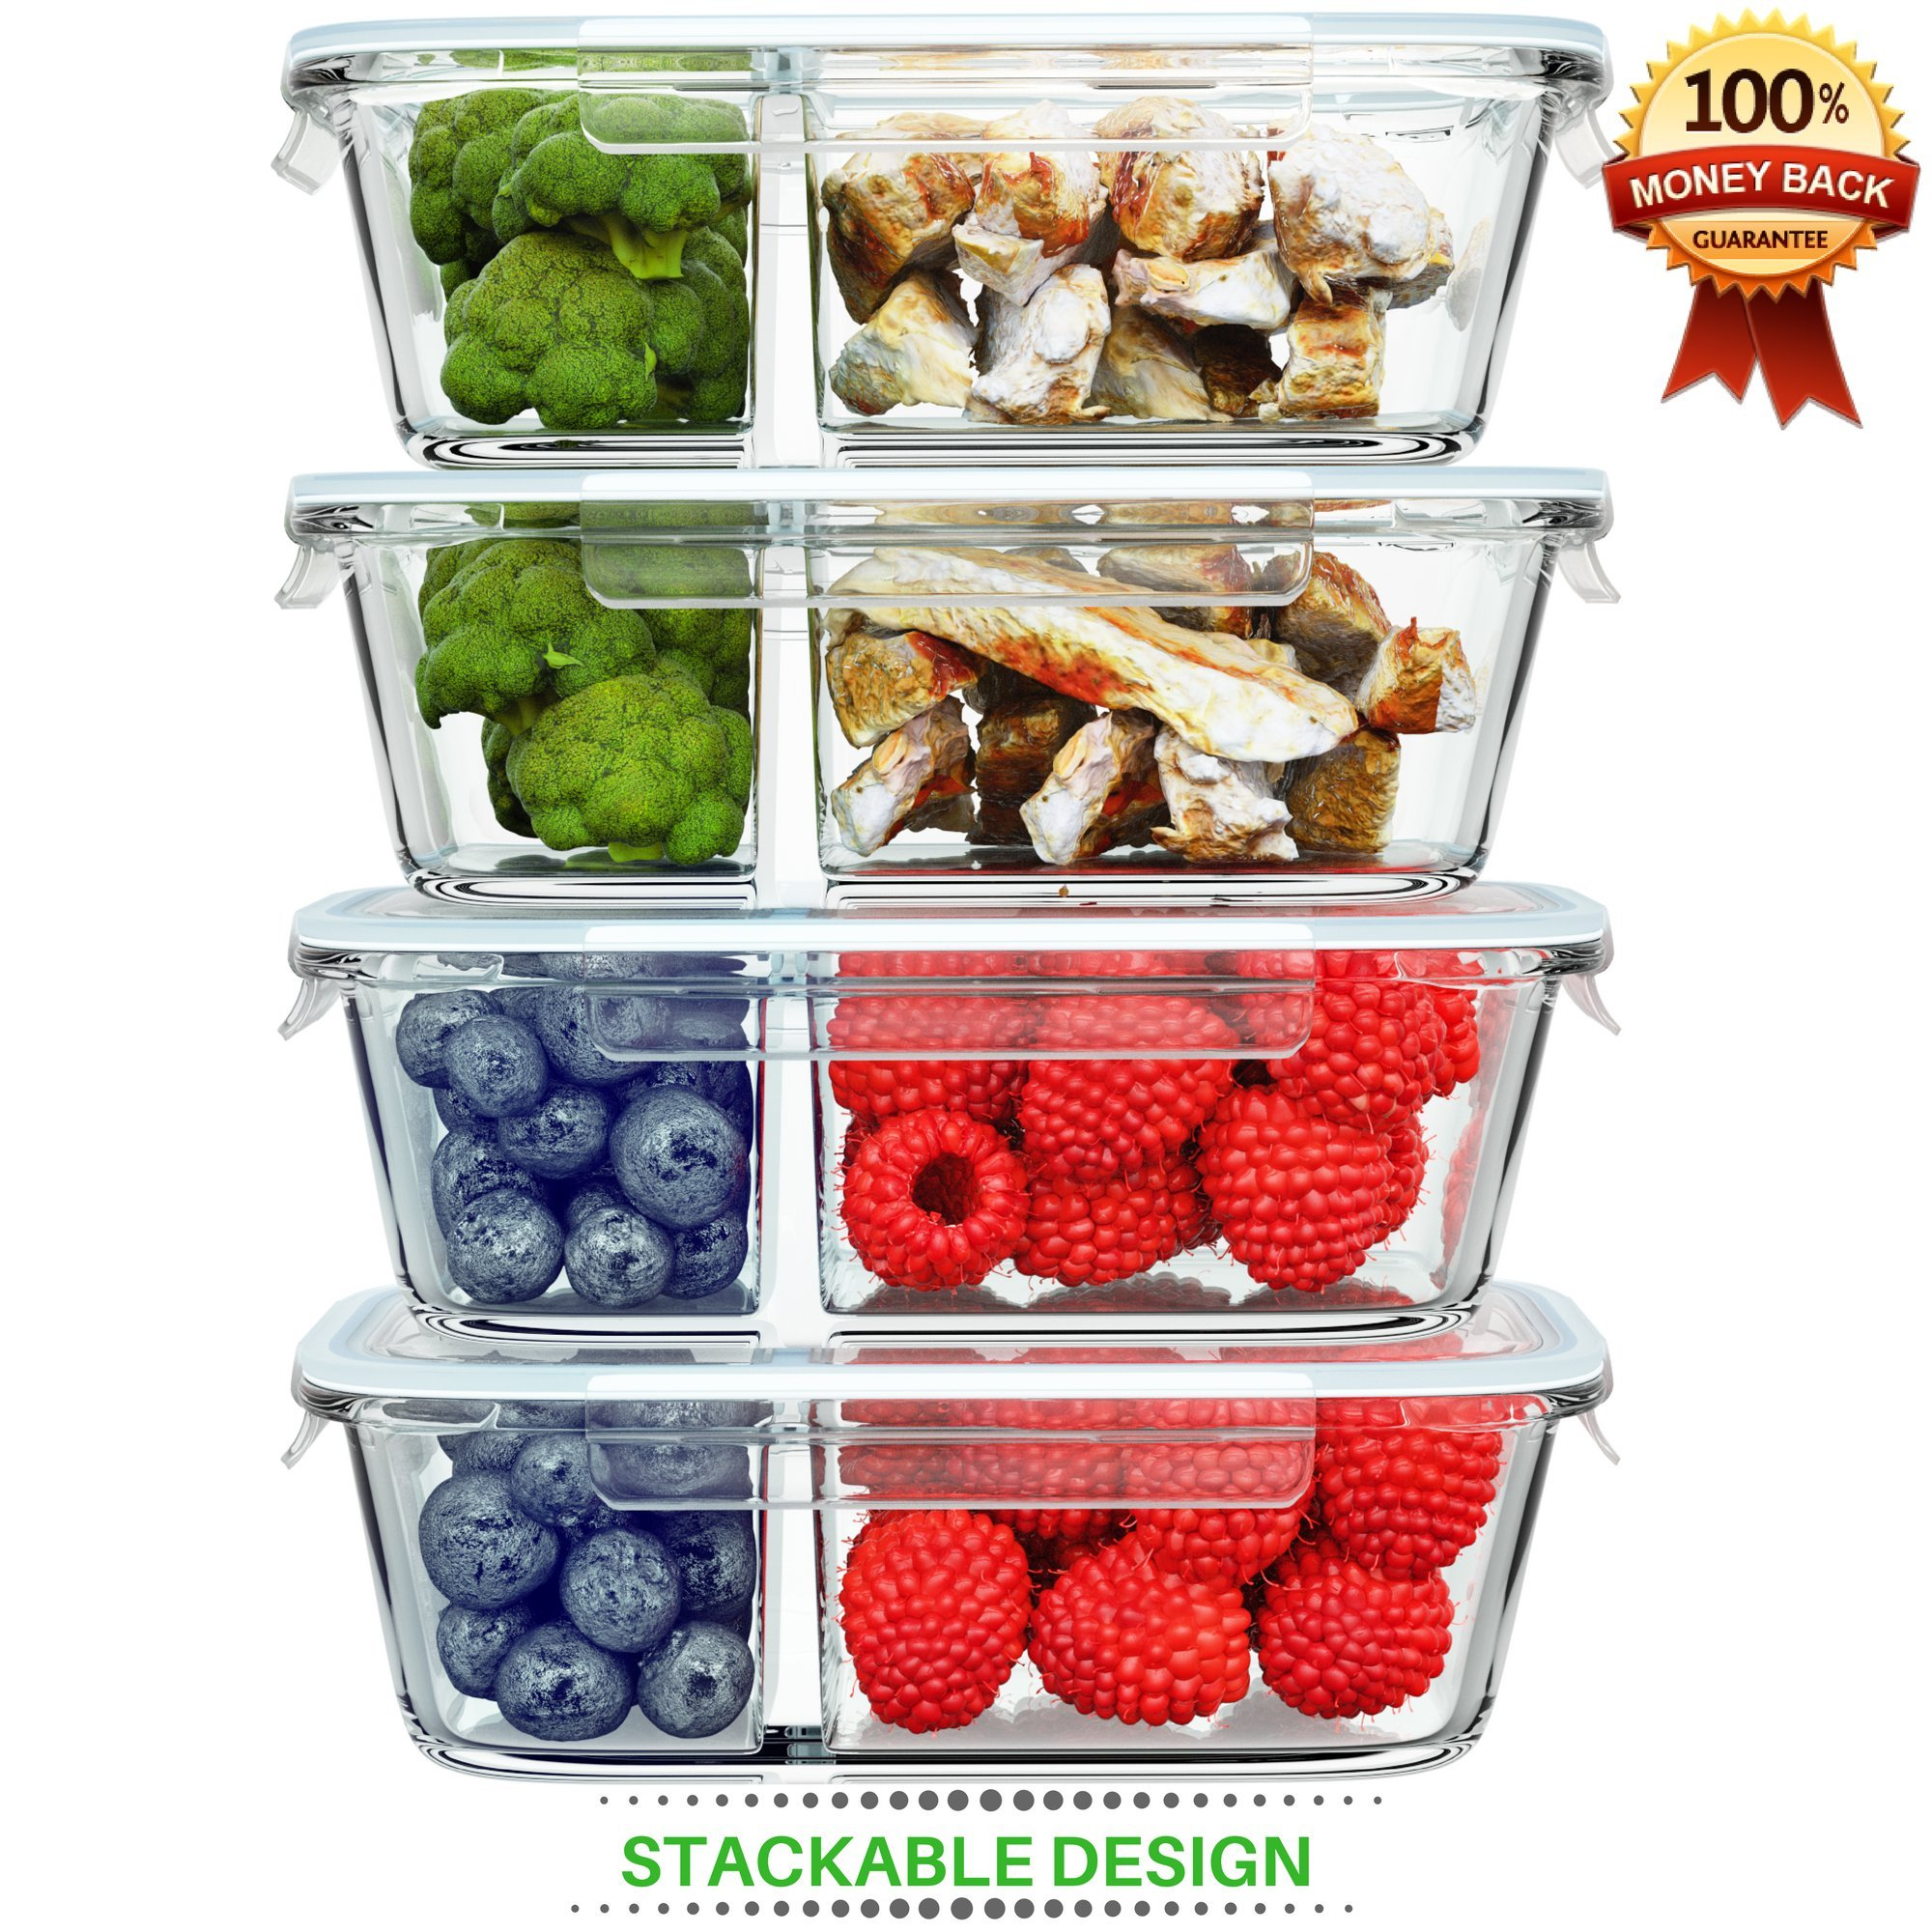 Shazo [4-PACK, 32oz] Glass Food Storage Container 2